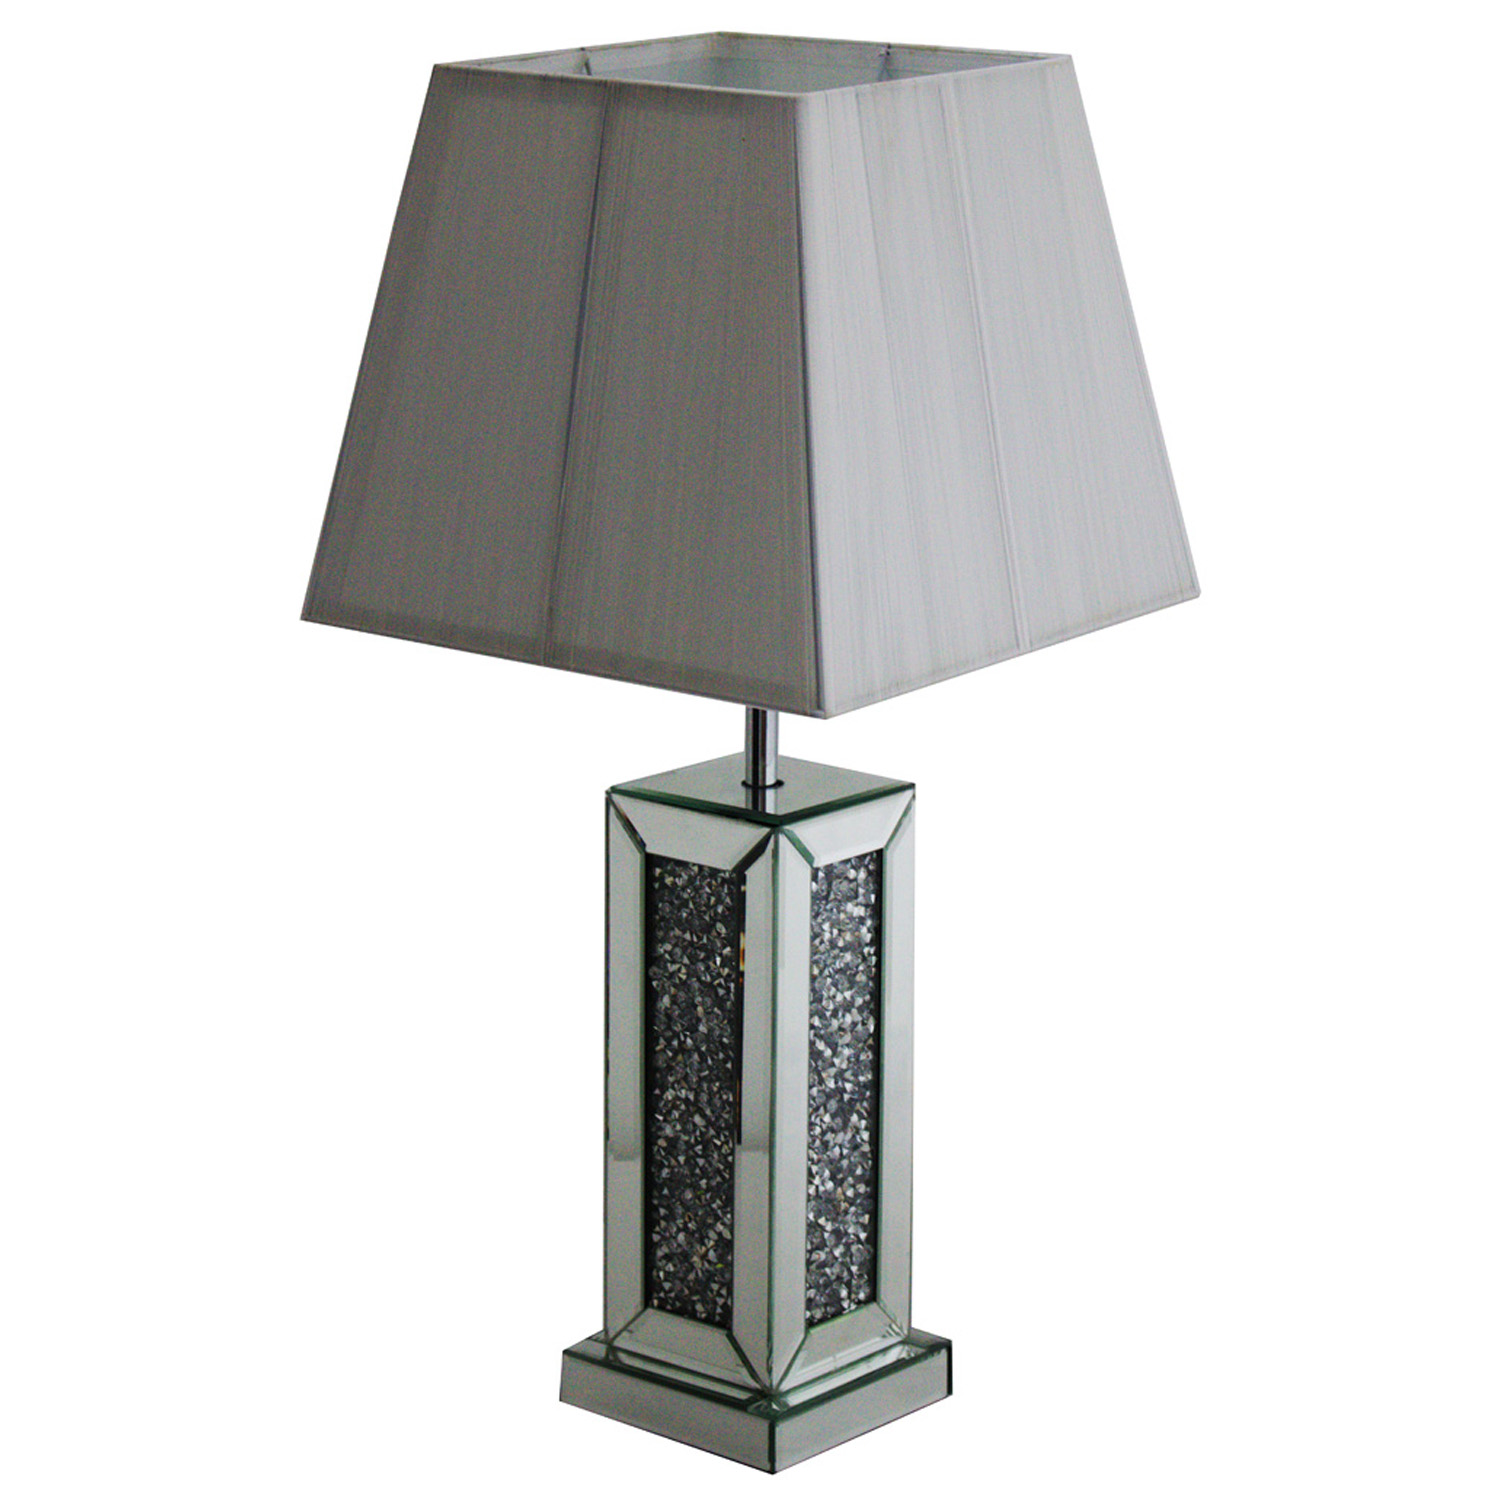 Details about modern mirrored glass bedside table lamp desk light office home lighting decor